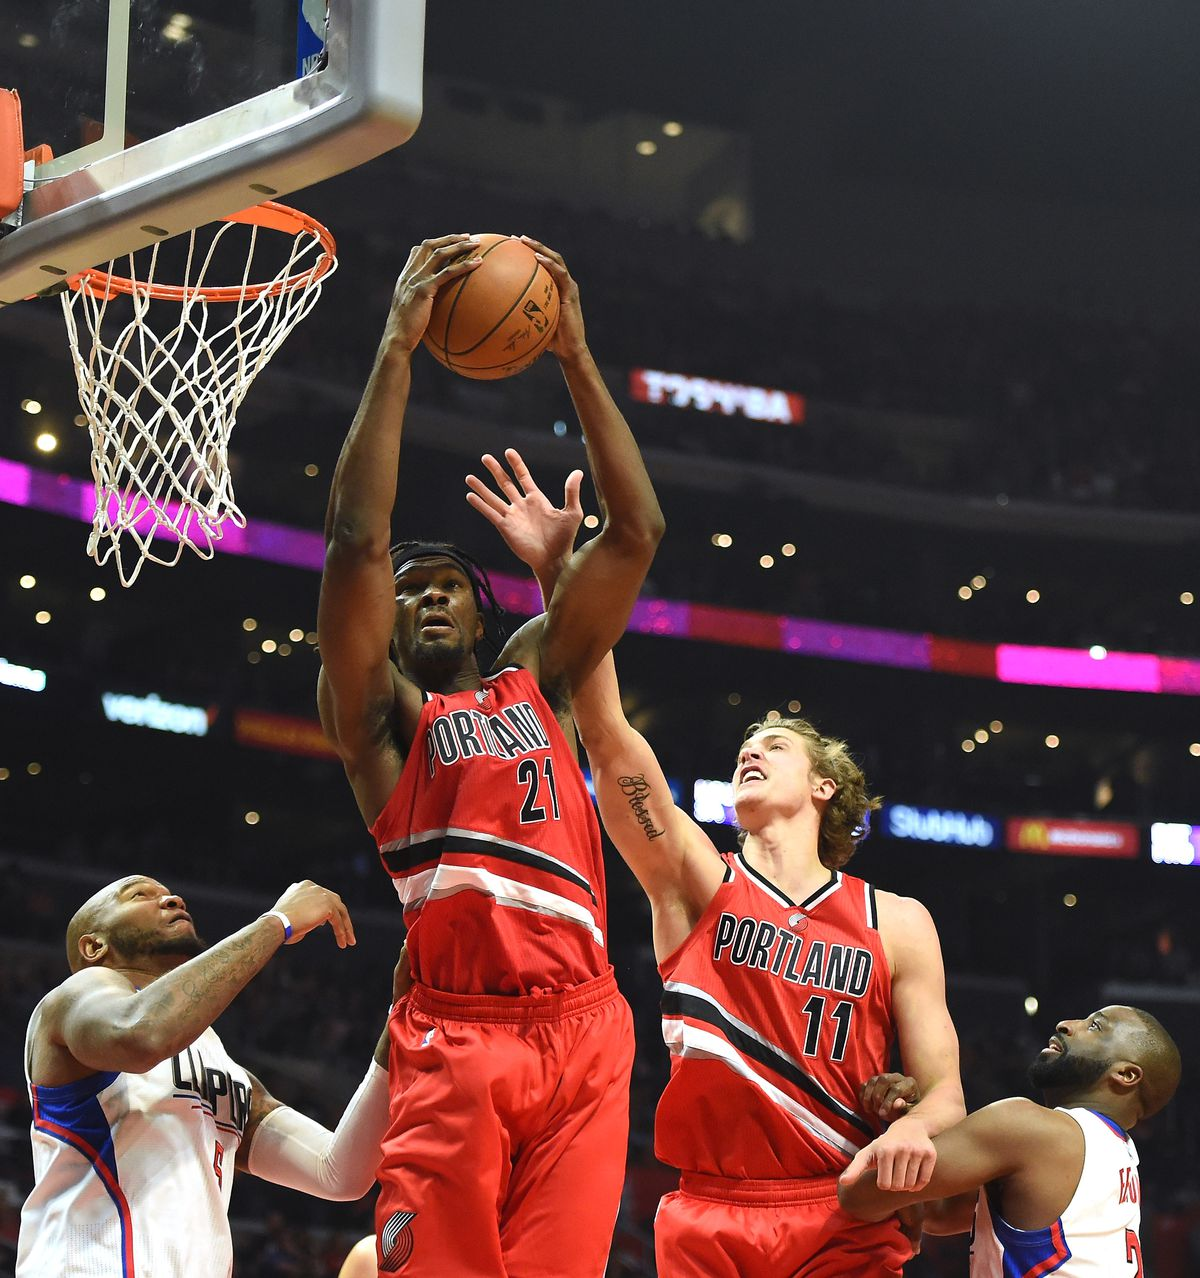 Noah Vonleh of the Portland Trail Blazers grabs a rebound from Meyers Leonard and Marries Speights and Raymond Felton of the Los Angeles Clippers.